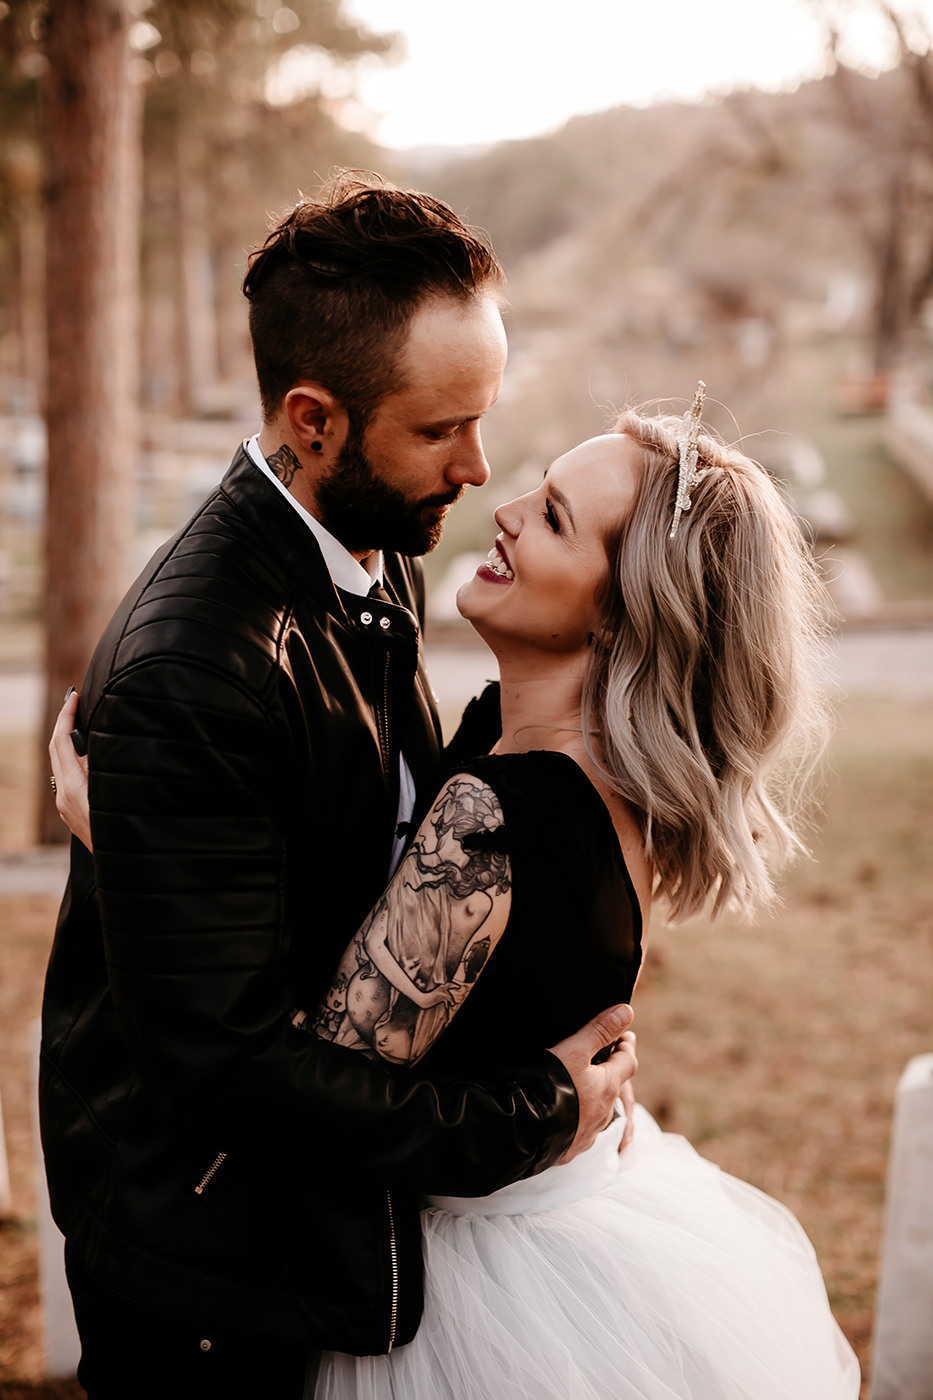 Liz Osban Photography Wedding Elopement Eloped engaged engagement couples session photographer deadwood south dakota wyoming beautiful vintage moody colorado mountains vintage best vintage lease martin mason hotel 105.jpg